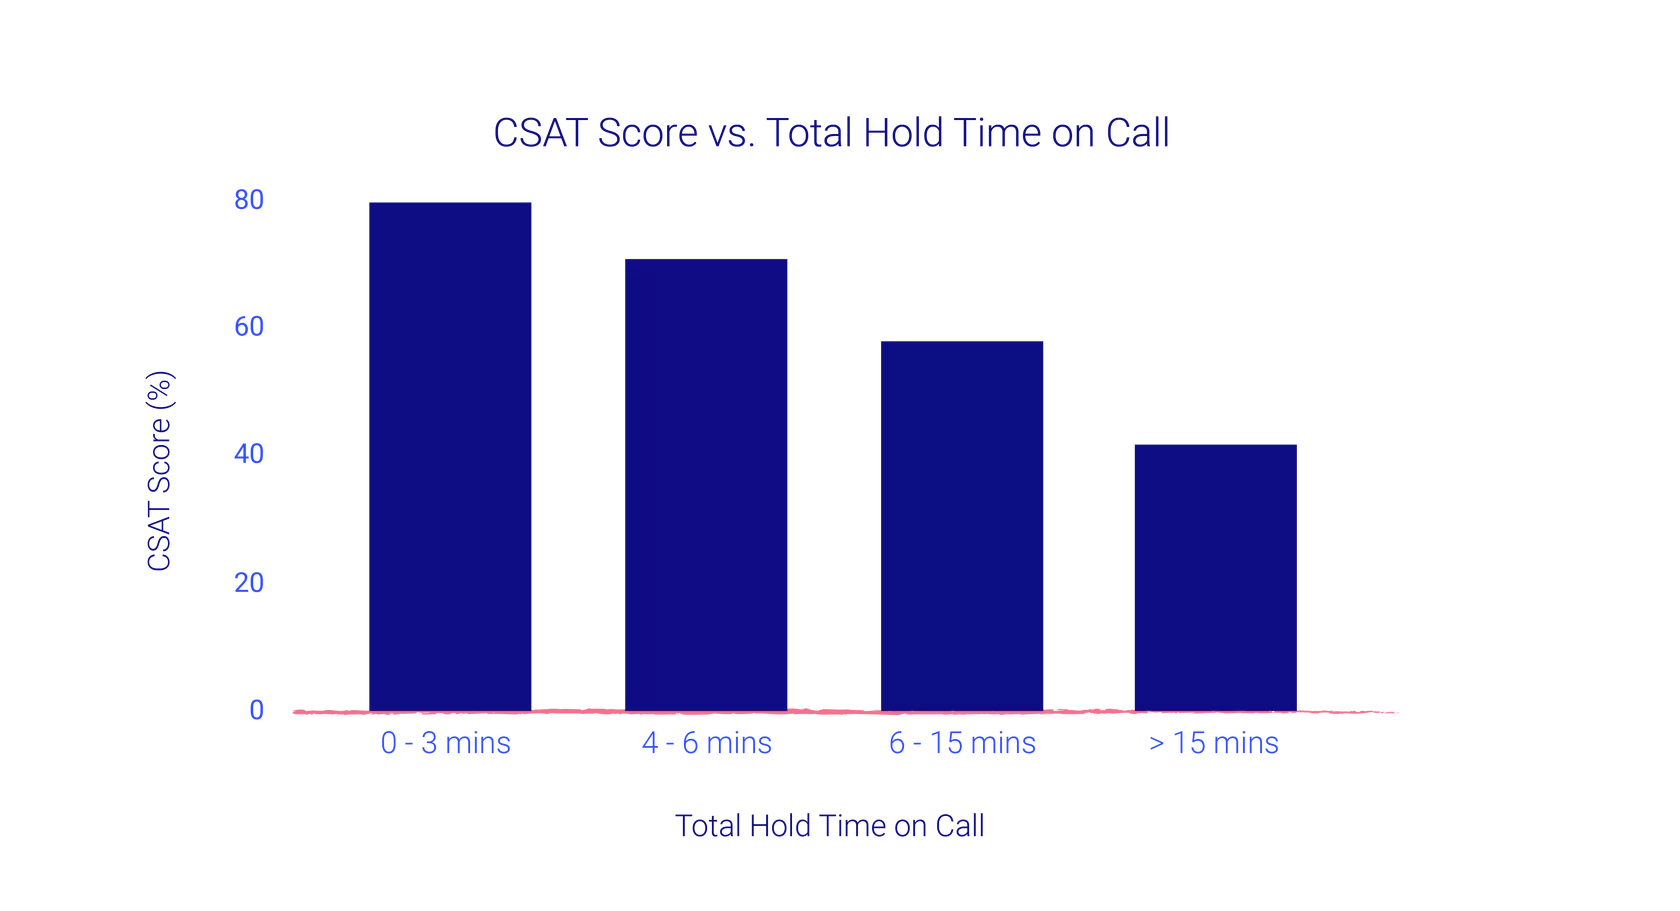 CSAT vs Hold Time On Call